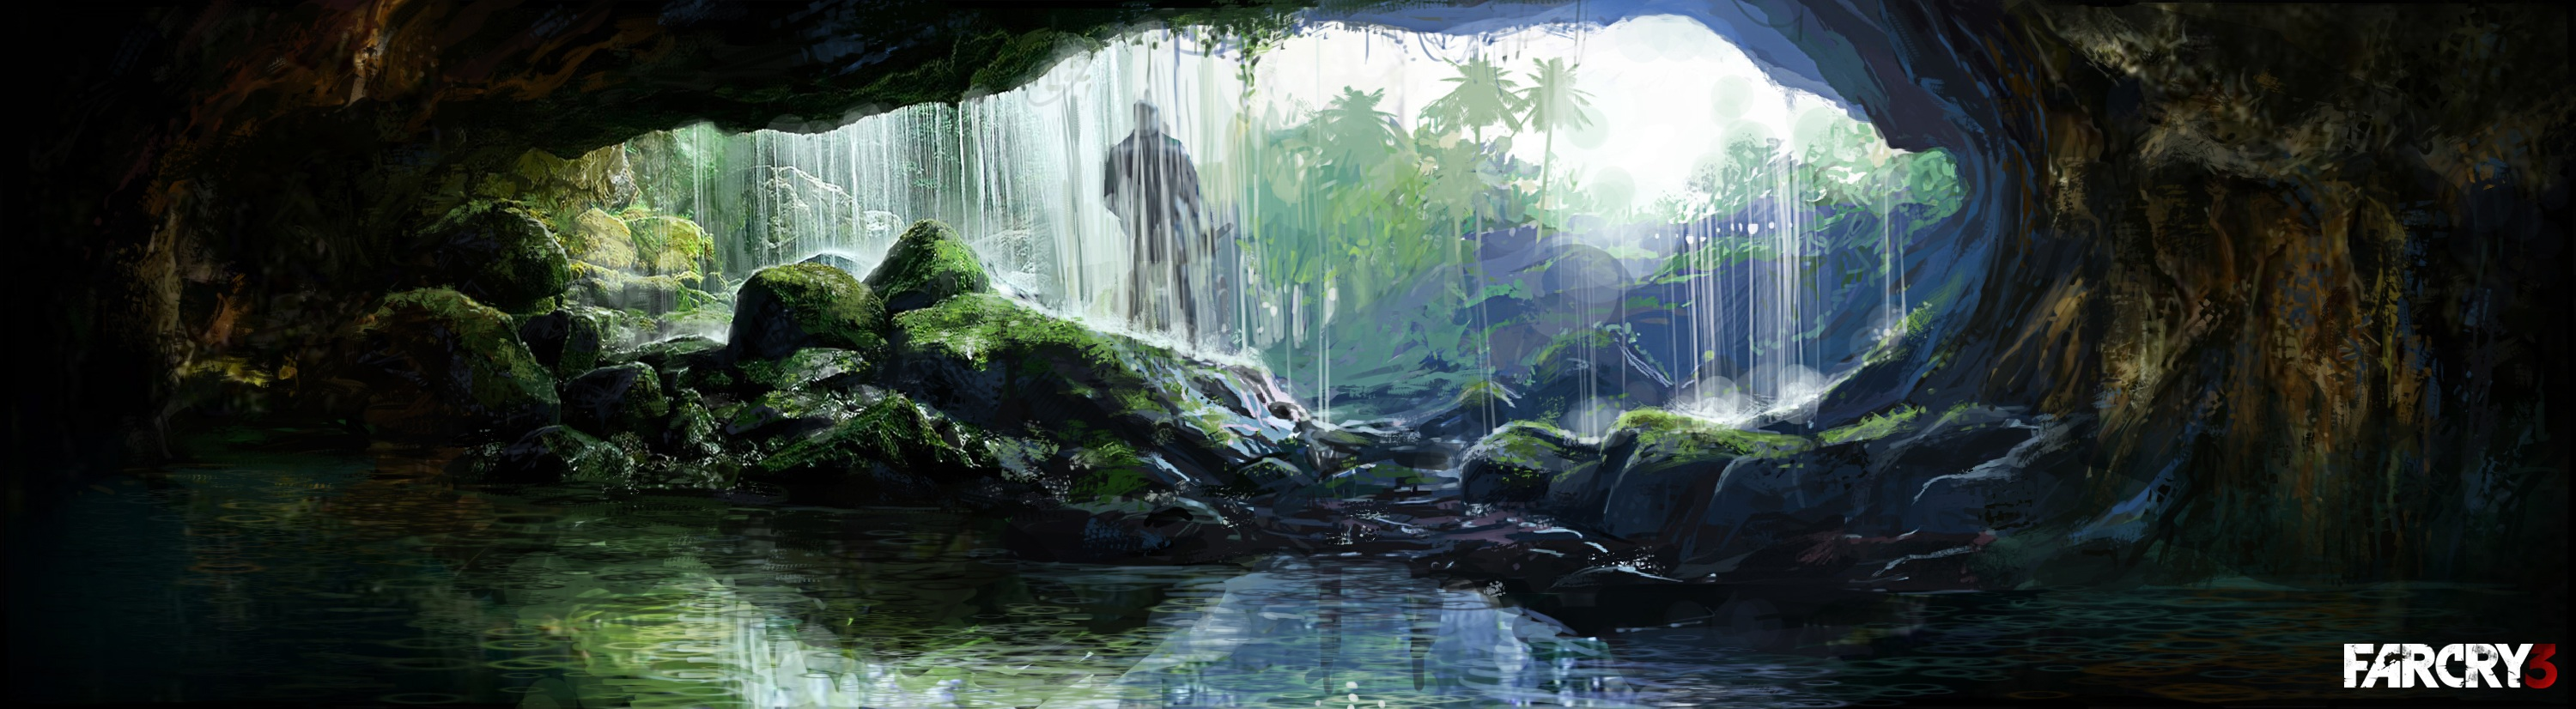 Far Cry Computer Wallpapers Desktop Backgrounds 3000x826 ID 3000x826